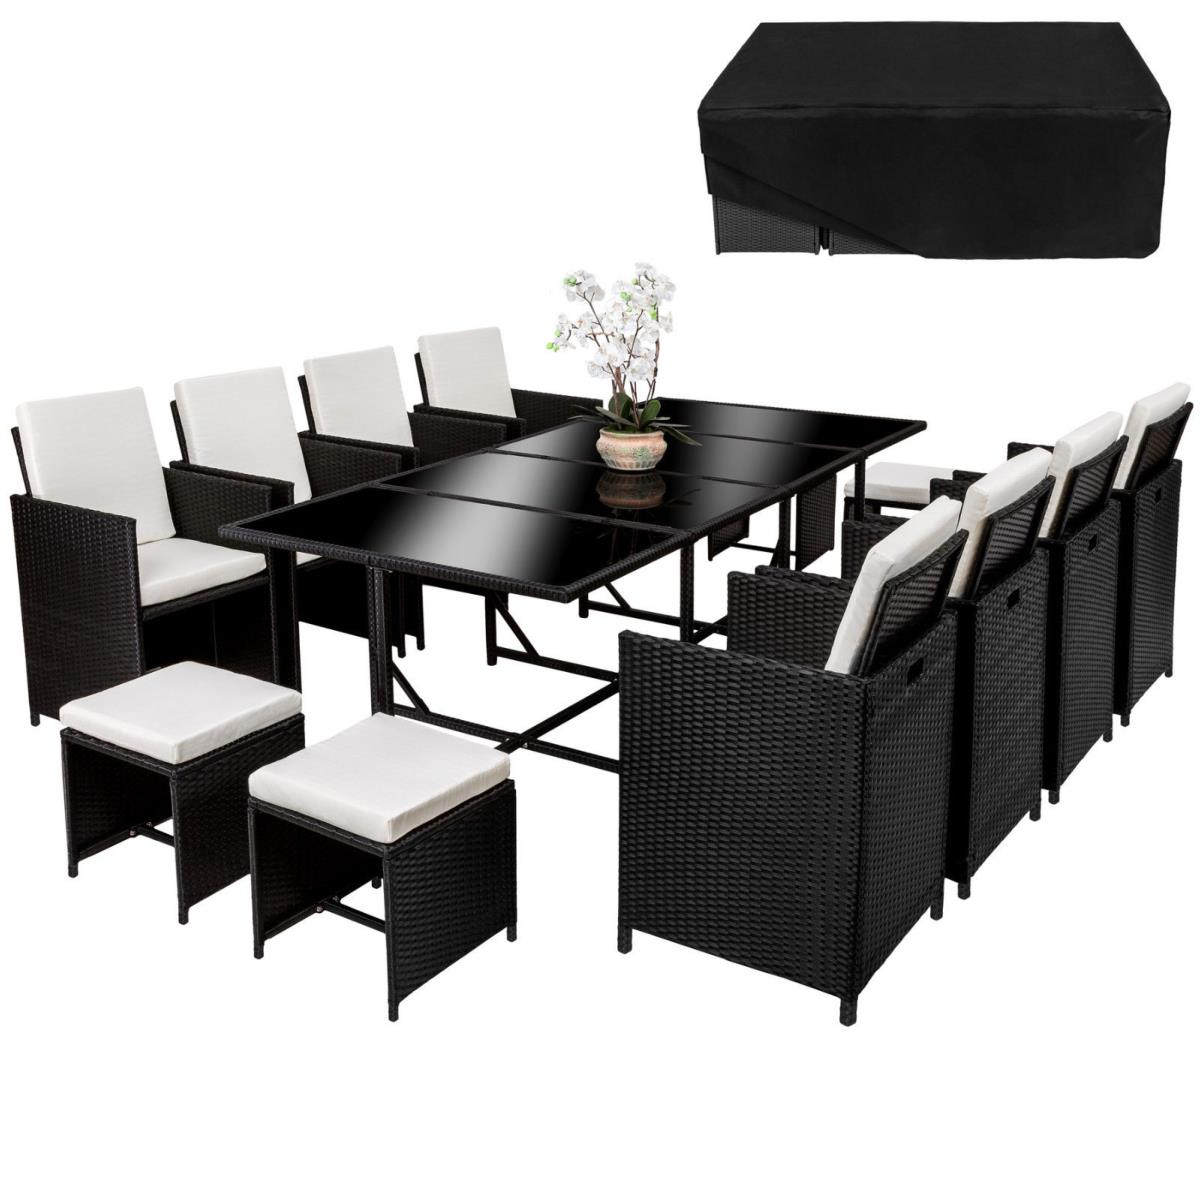 salon de jardin canap r sine tress e 12 personnes. Black Bedroom Furniture Sets. Home Design Ideas